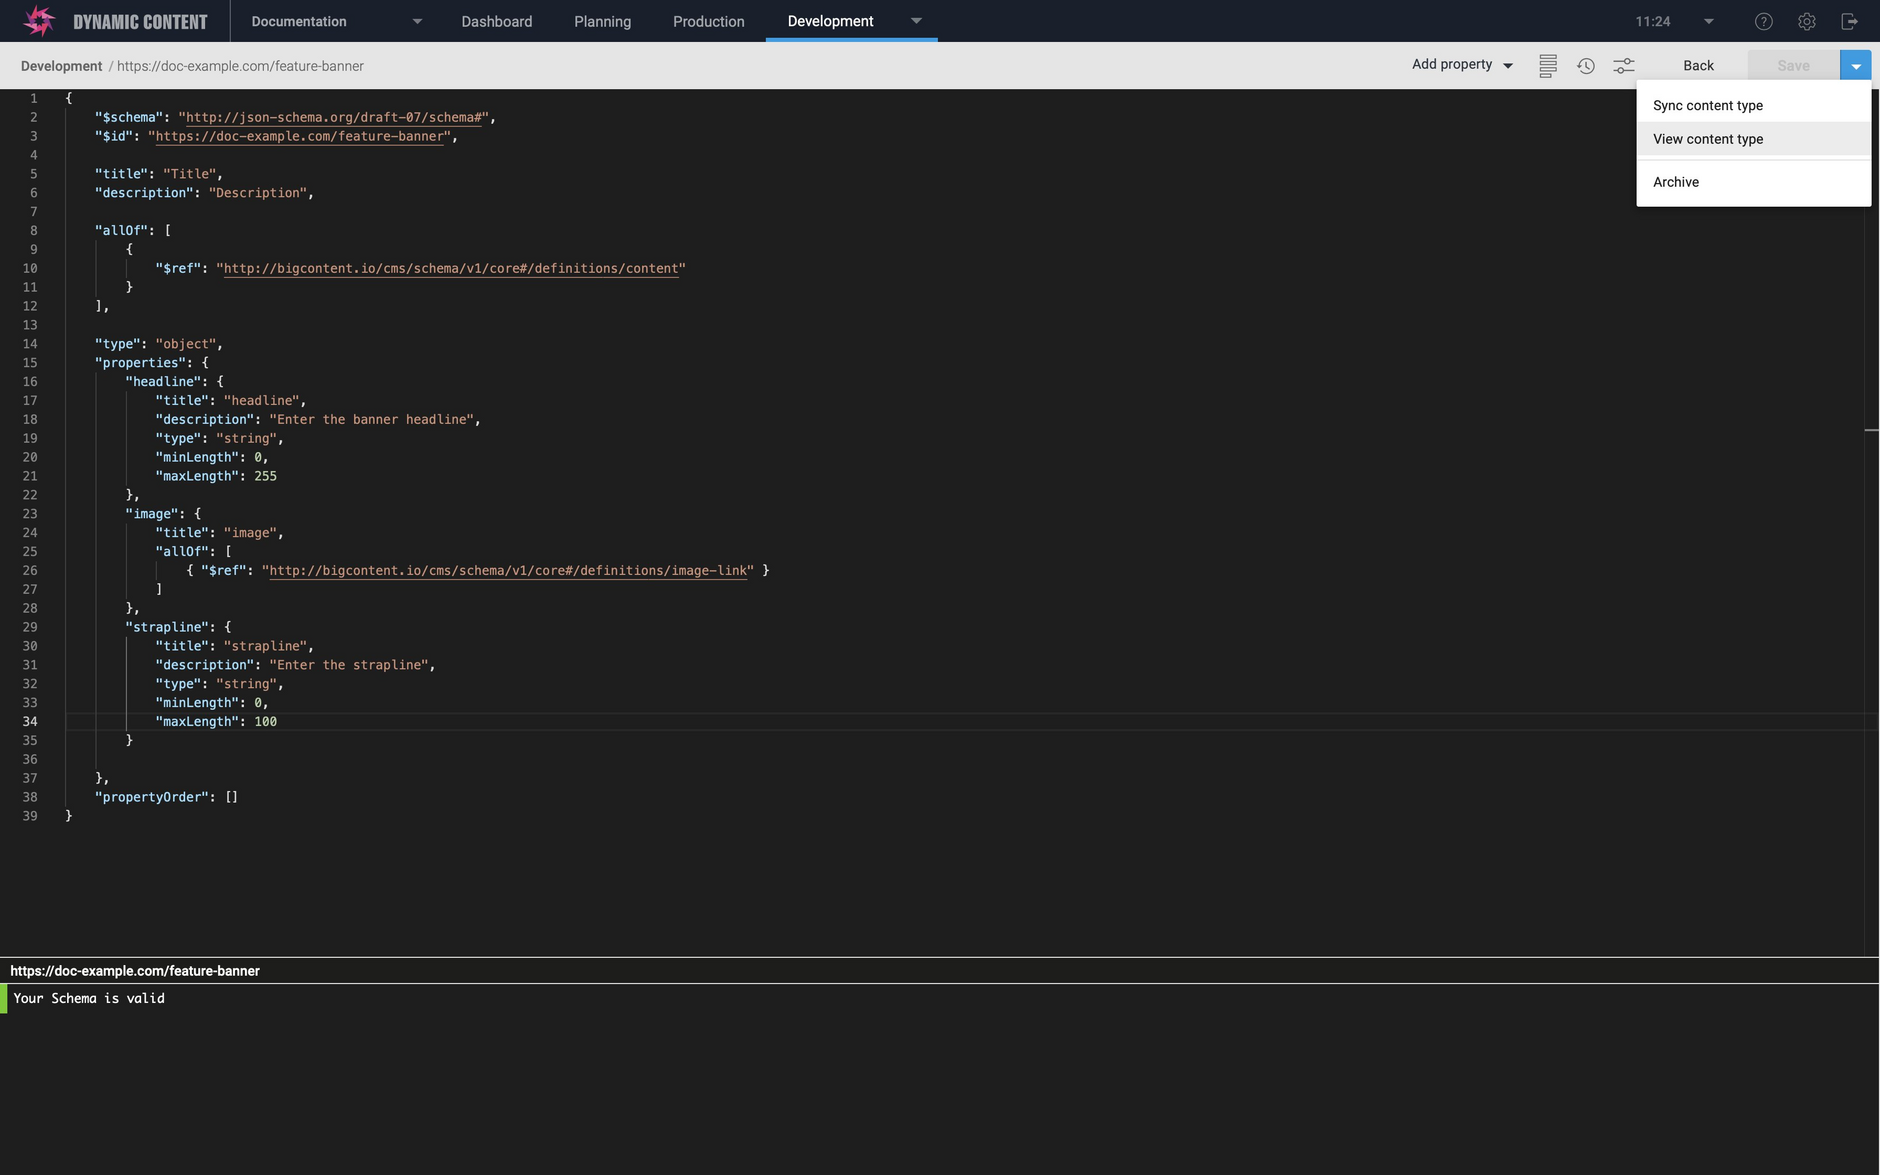 You can now open the content type window from the schema editor